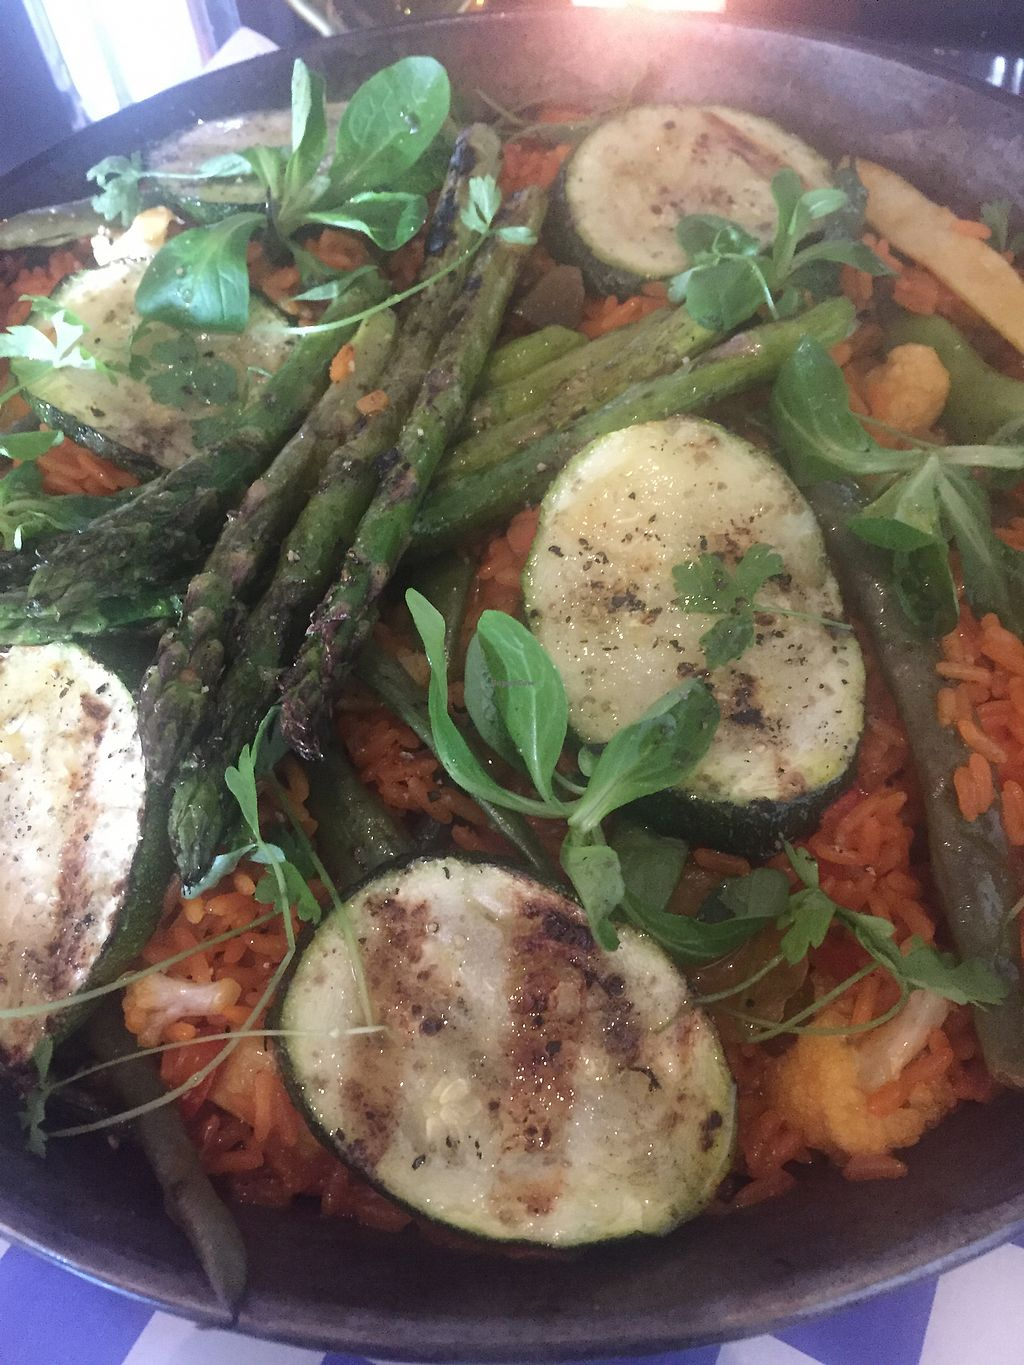 """Photo of Three Chef's Bistro  by <a href=""""/members/profile/dawnlynn0421%40yahoo.co"""">dawnlynn0421@yahoo.co</a> <br/>vegetable paella  <br/> August 26, 2017  - <a href='/contact/abuse/image/99472/297667'>Report</a>"""